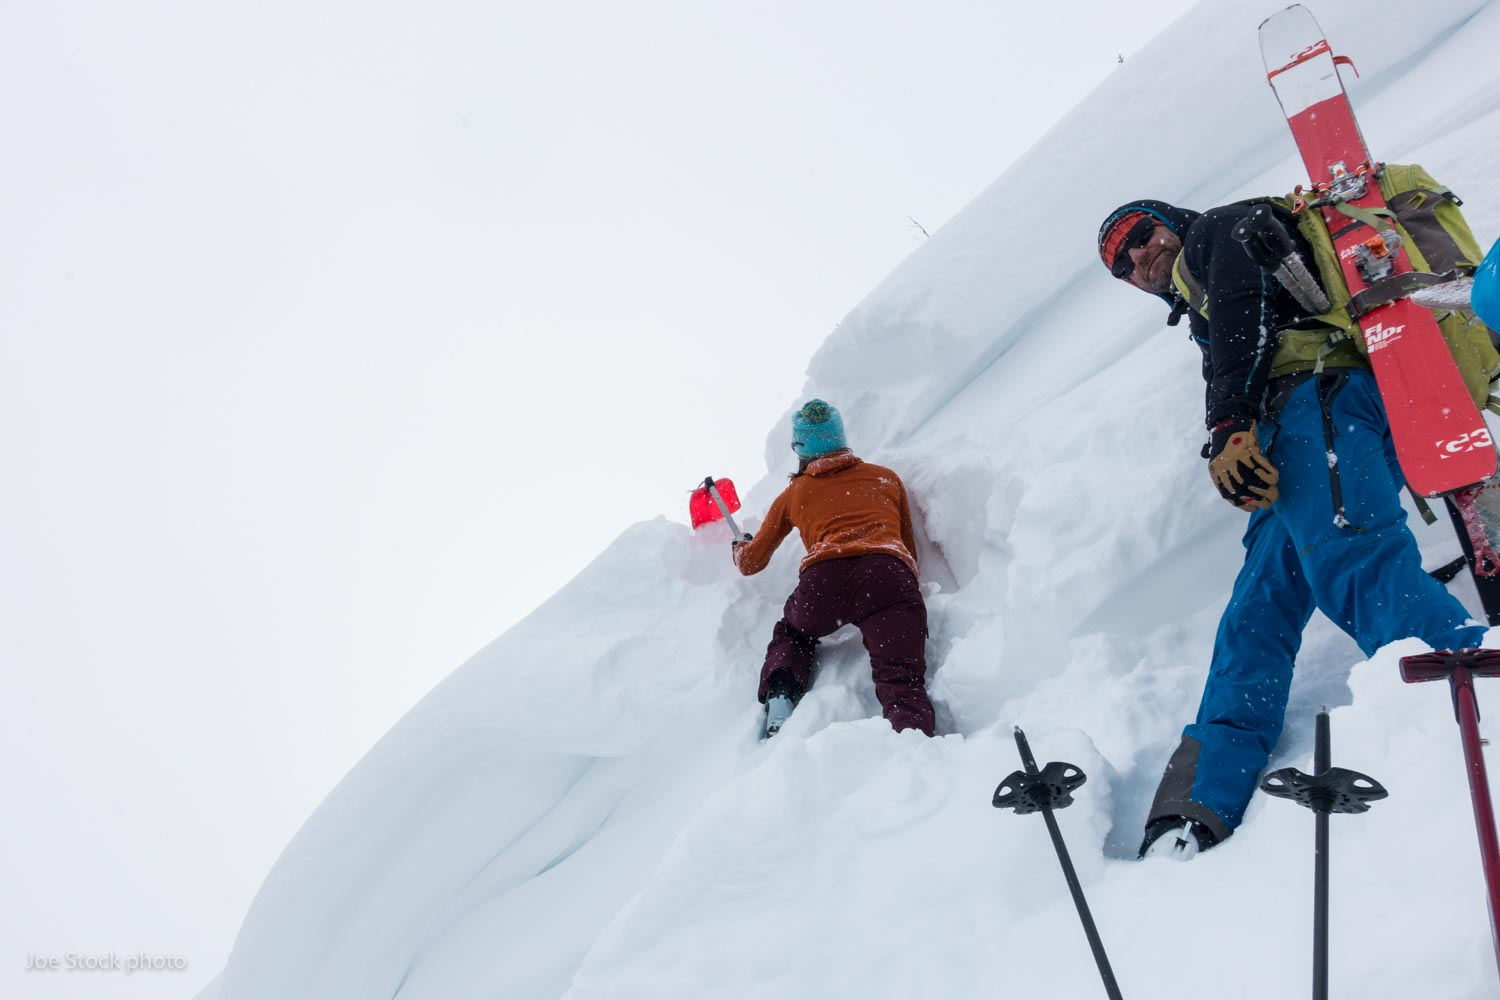 """It gets rowdy real quick,"" Andrew explained before we met his Austrian coworkers from Canadian Mountain Holidays for a day of backcountry skiing near Canmore, Alberta. Cornice burrowing and a whoomphing snowpack—a typical day in the Rockies."